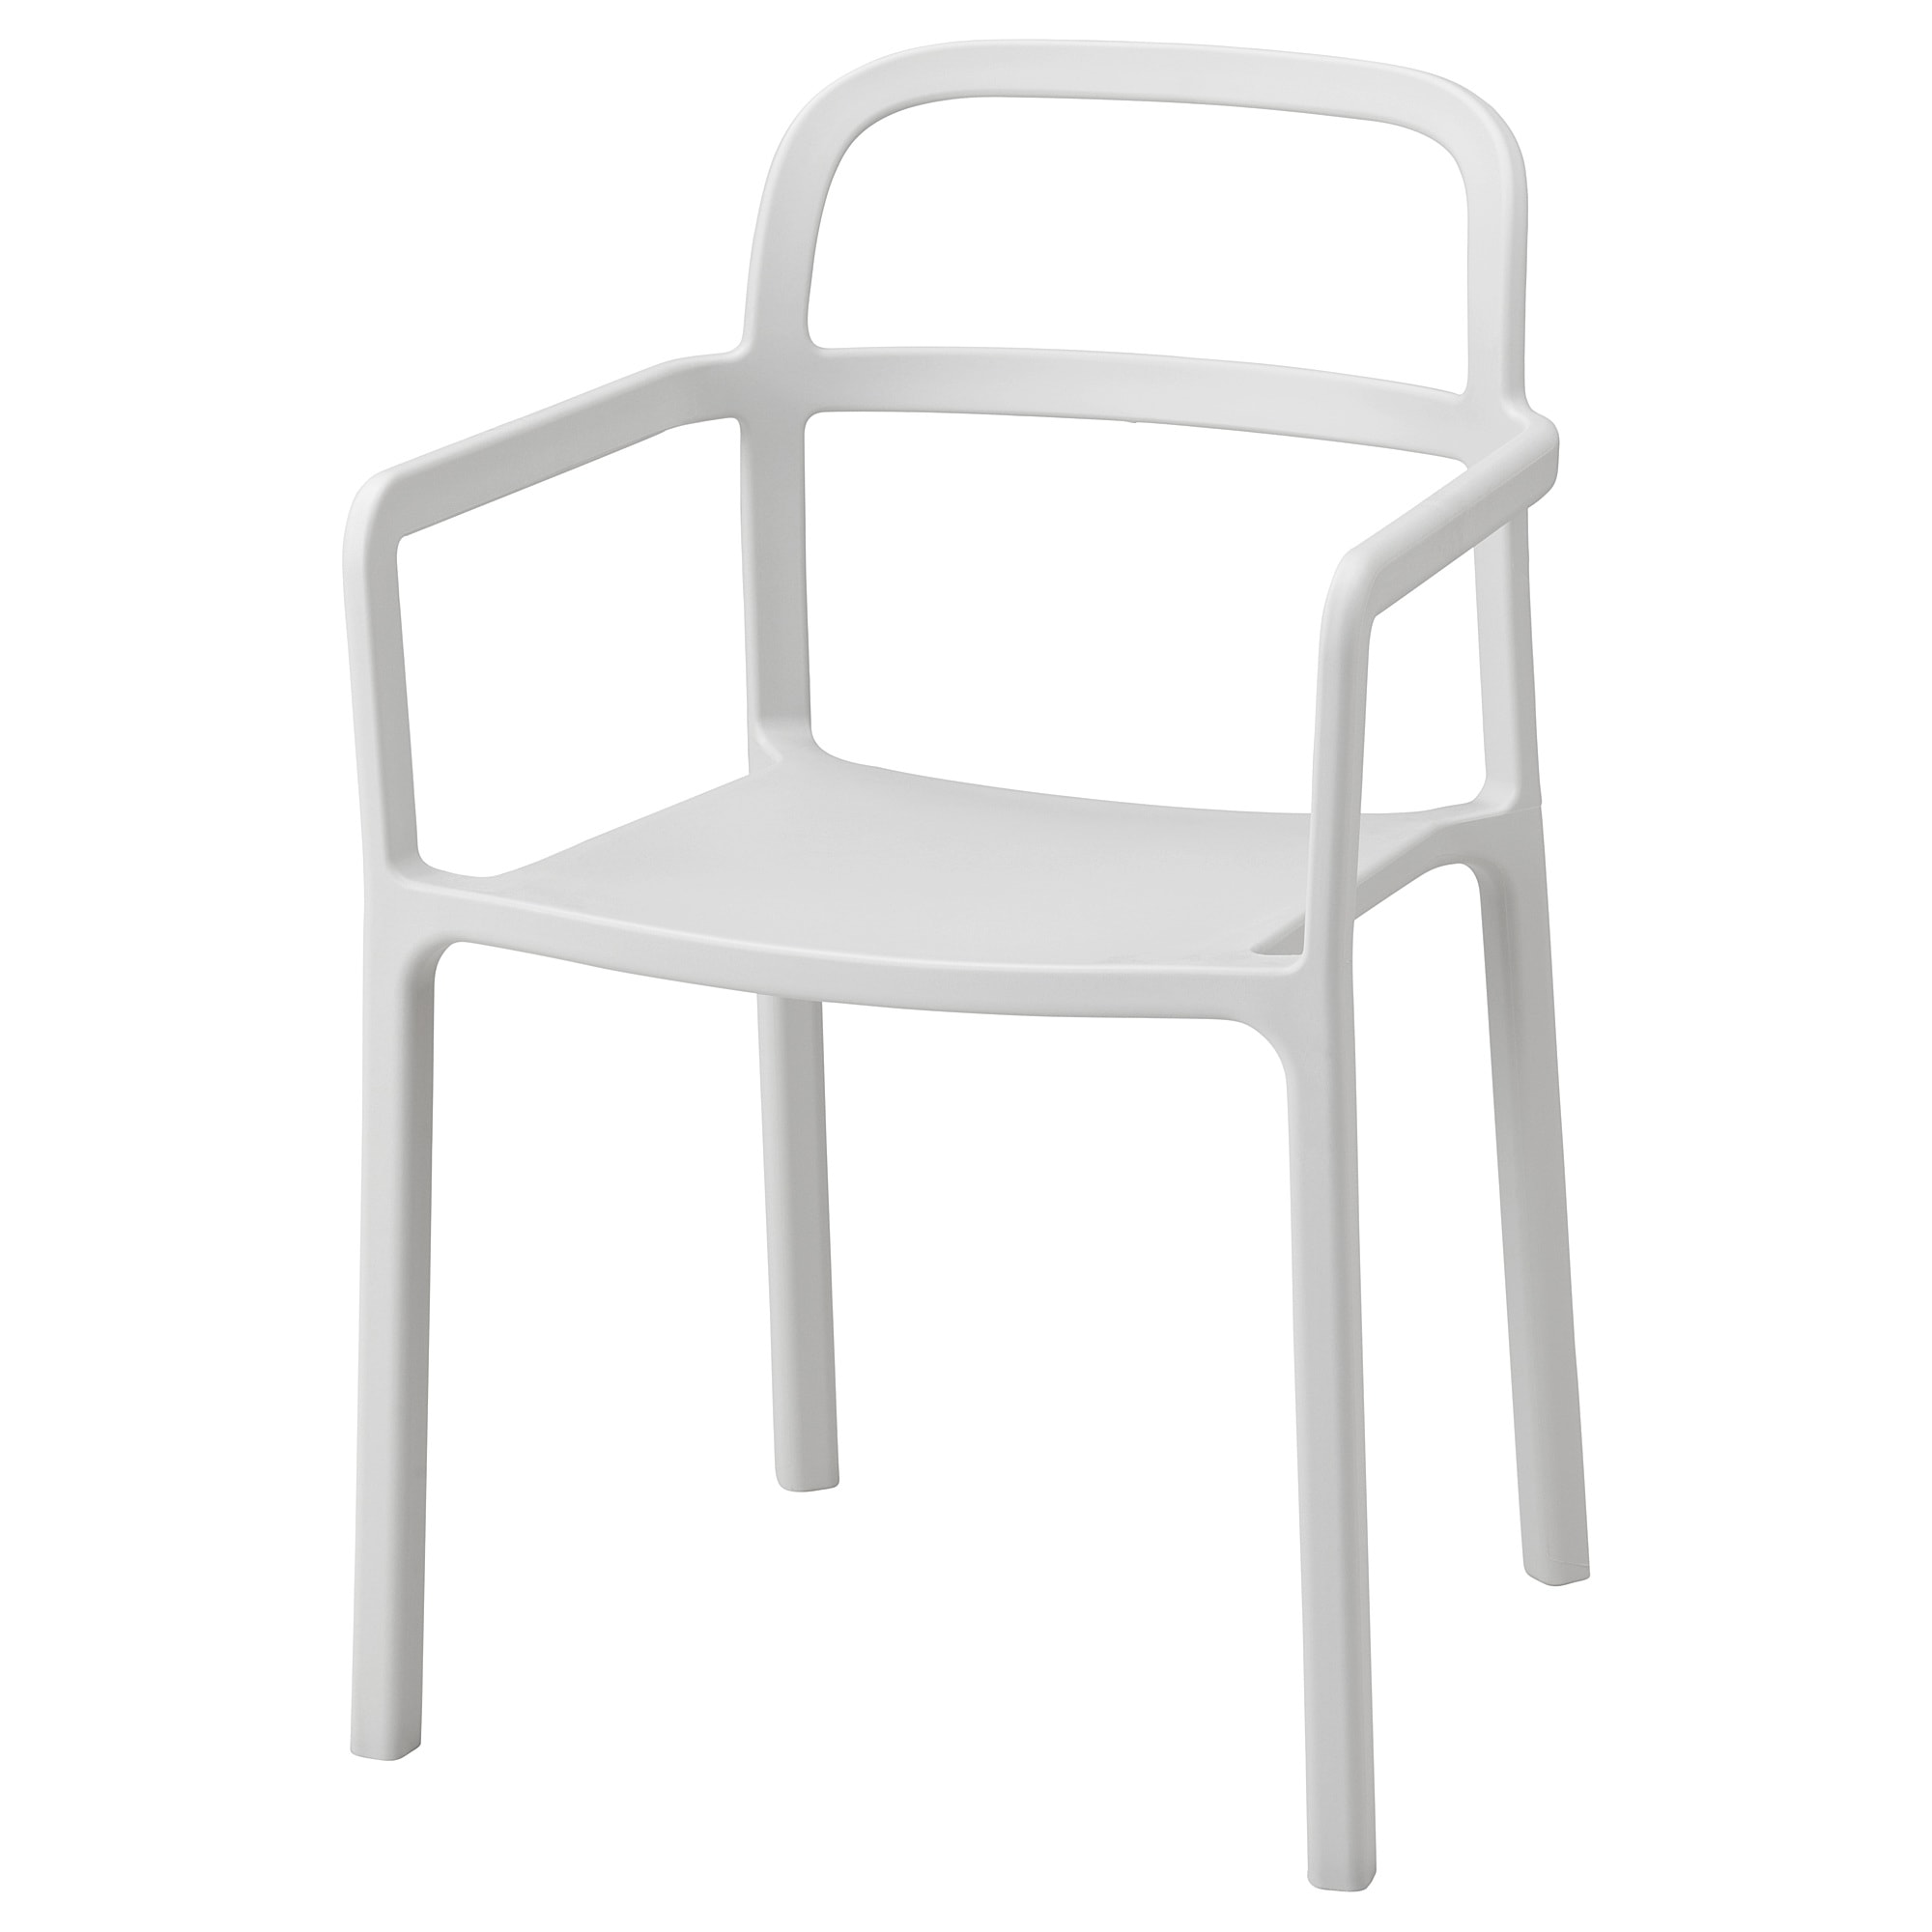 YPPERLIG Armchair, In/outdoor, Light Gray Tested For: 220 Lb Width: